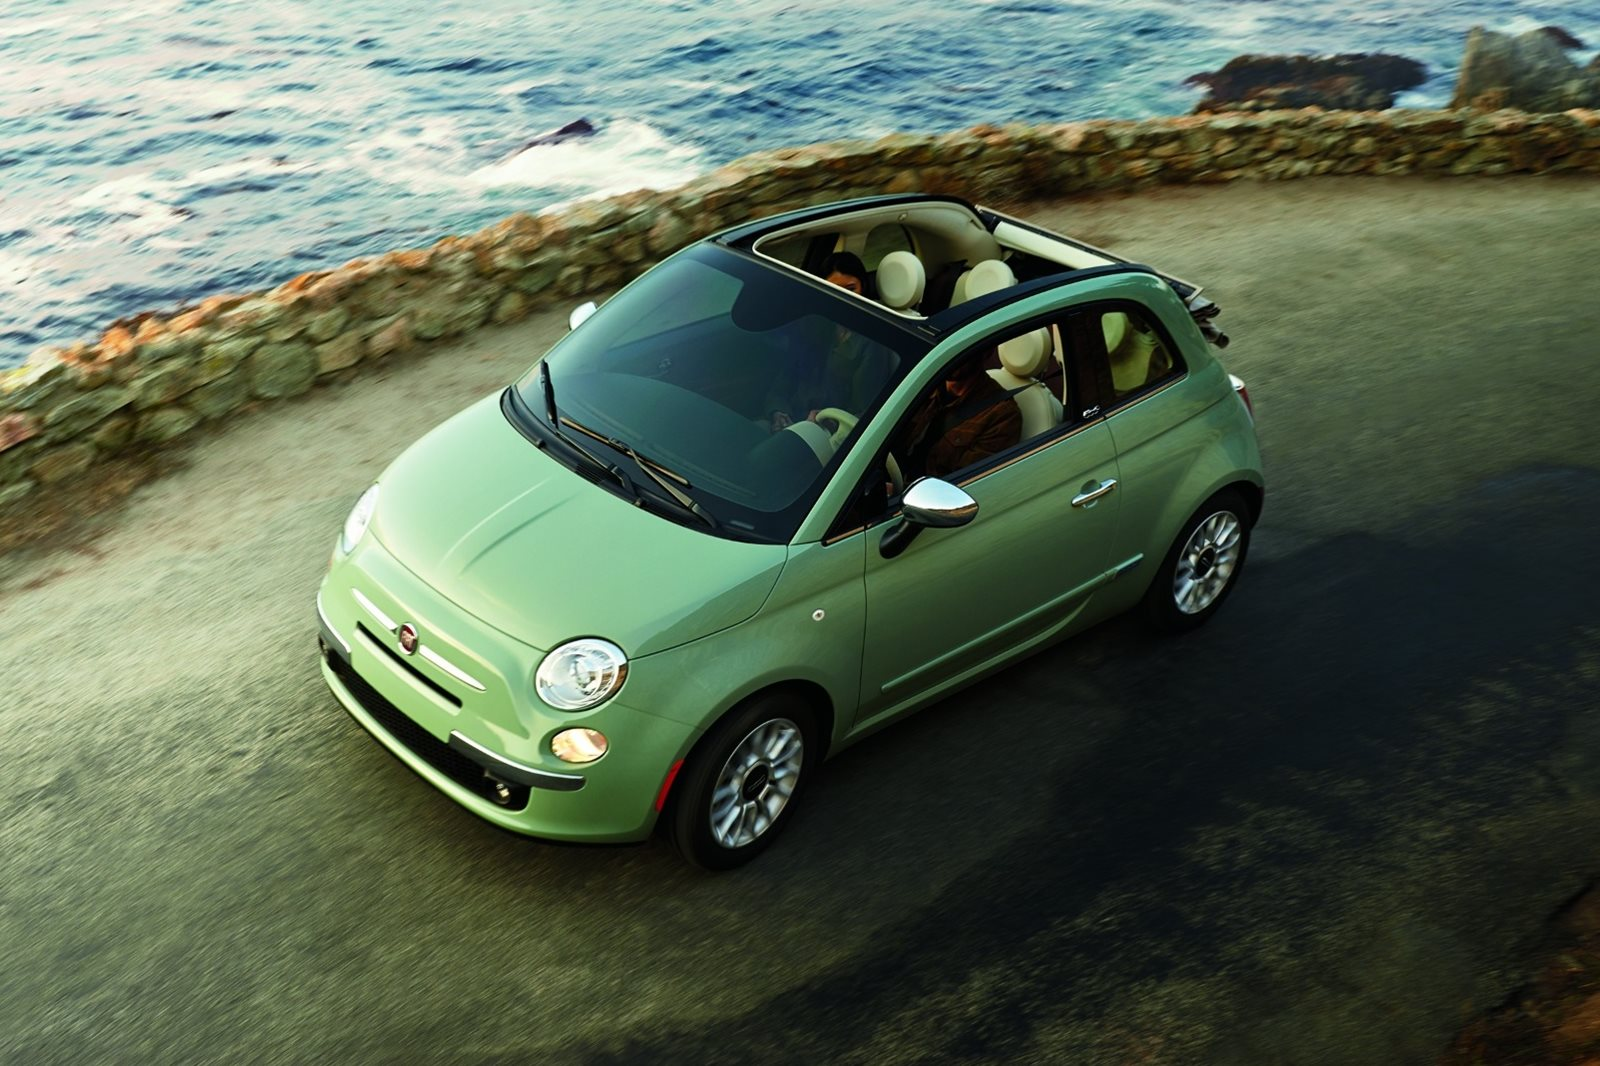 2018 fiat 500c convertible review trims specs and price carbuzz. Black Bedroom Furniture Sets. Home Design Ideas